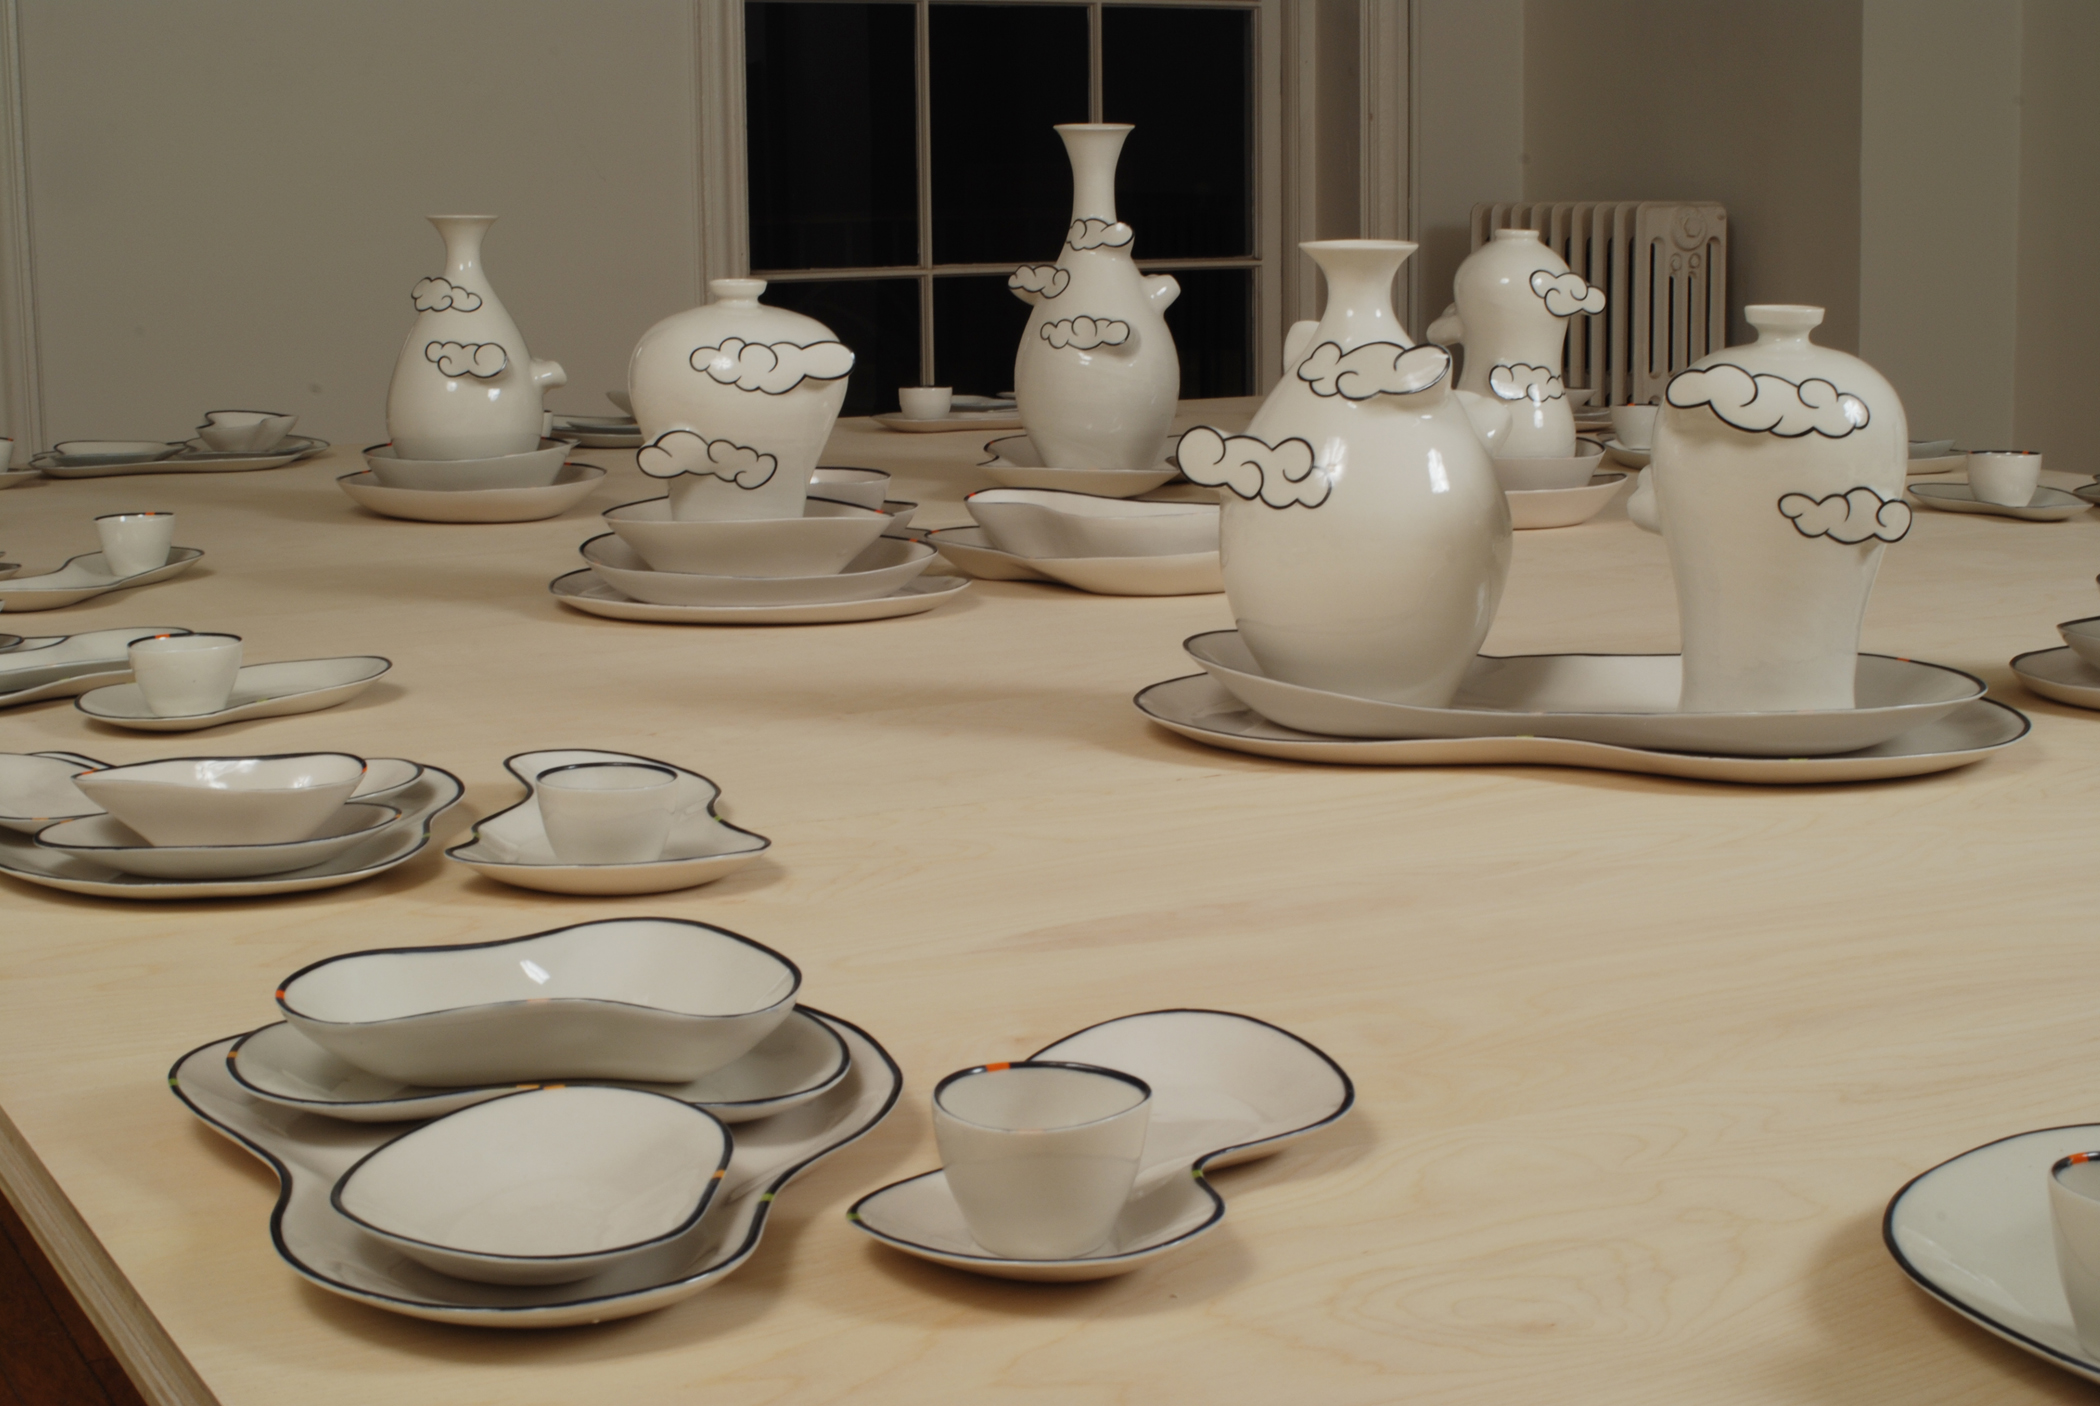 Place/Setting, 2011